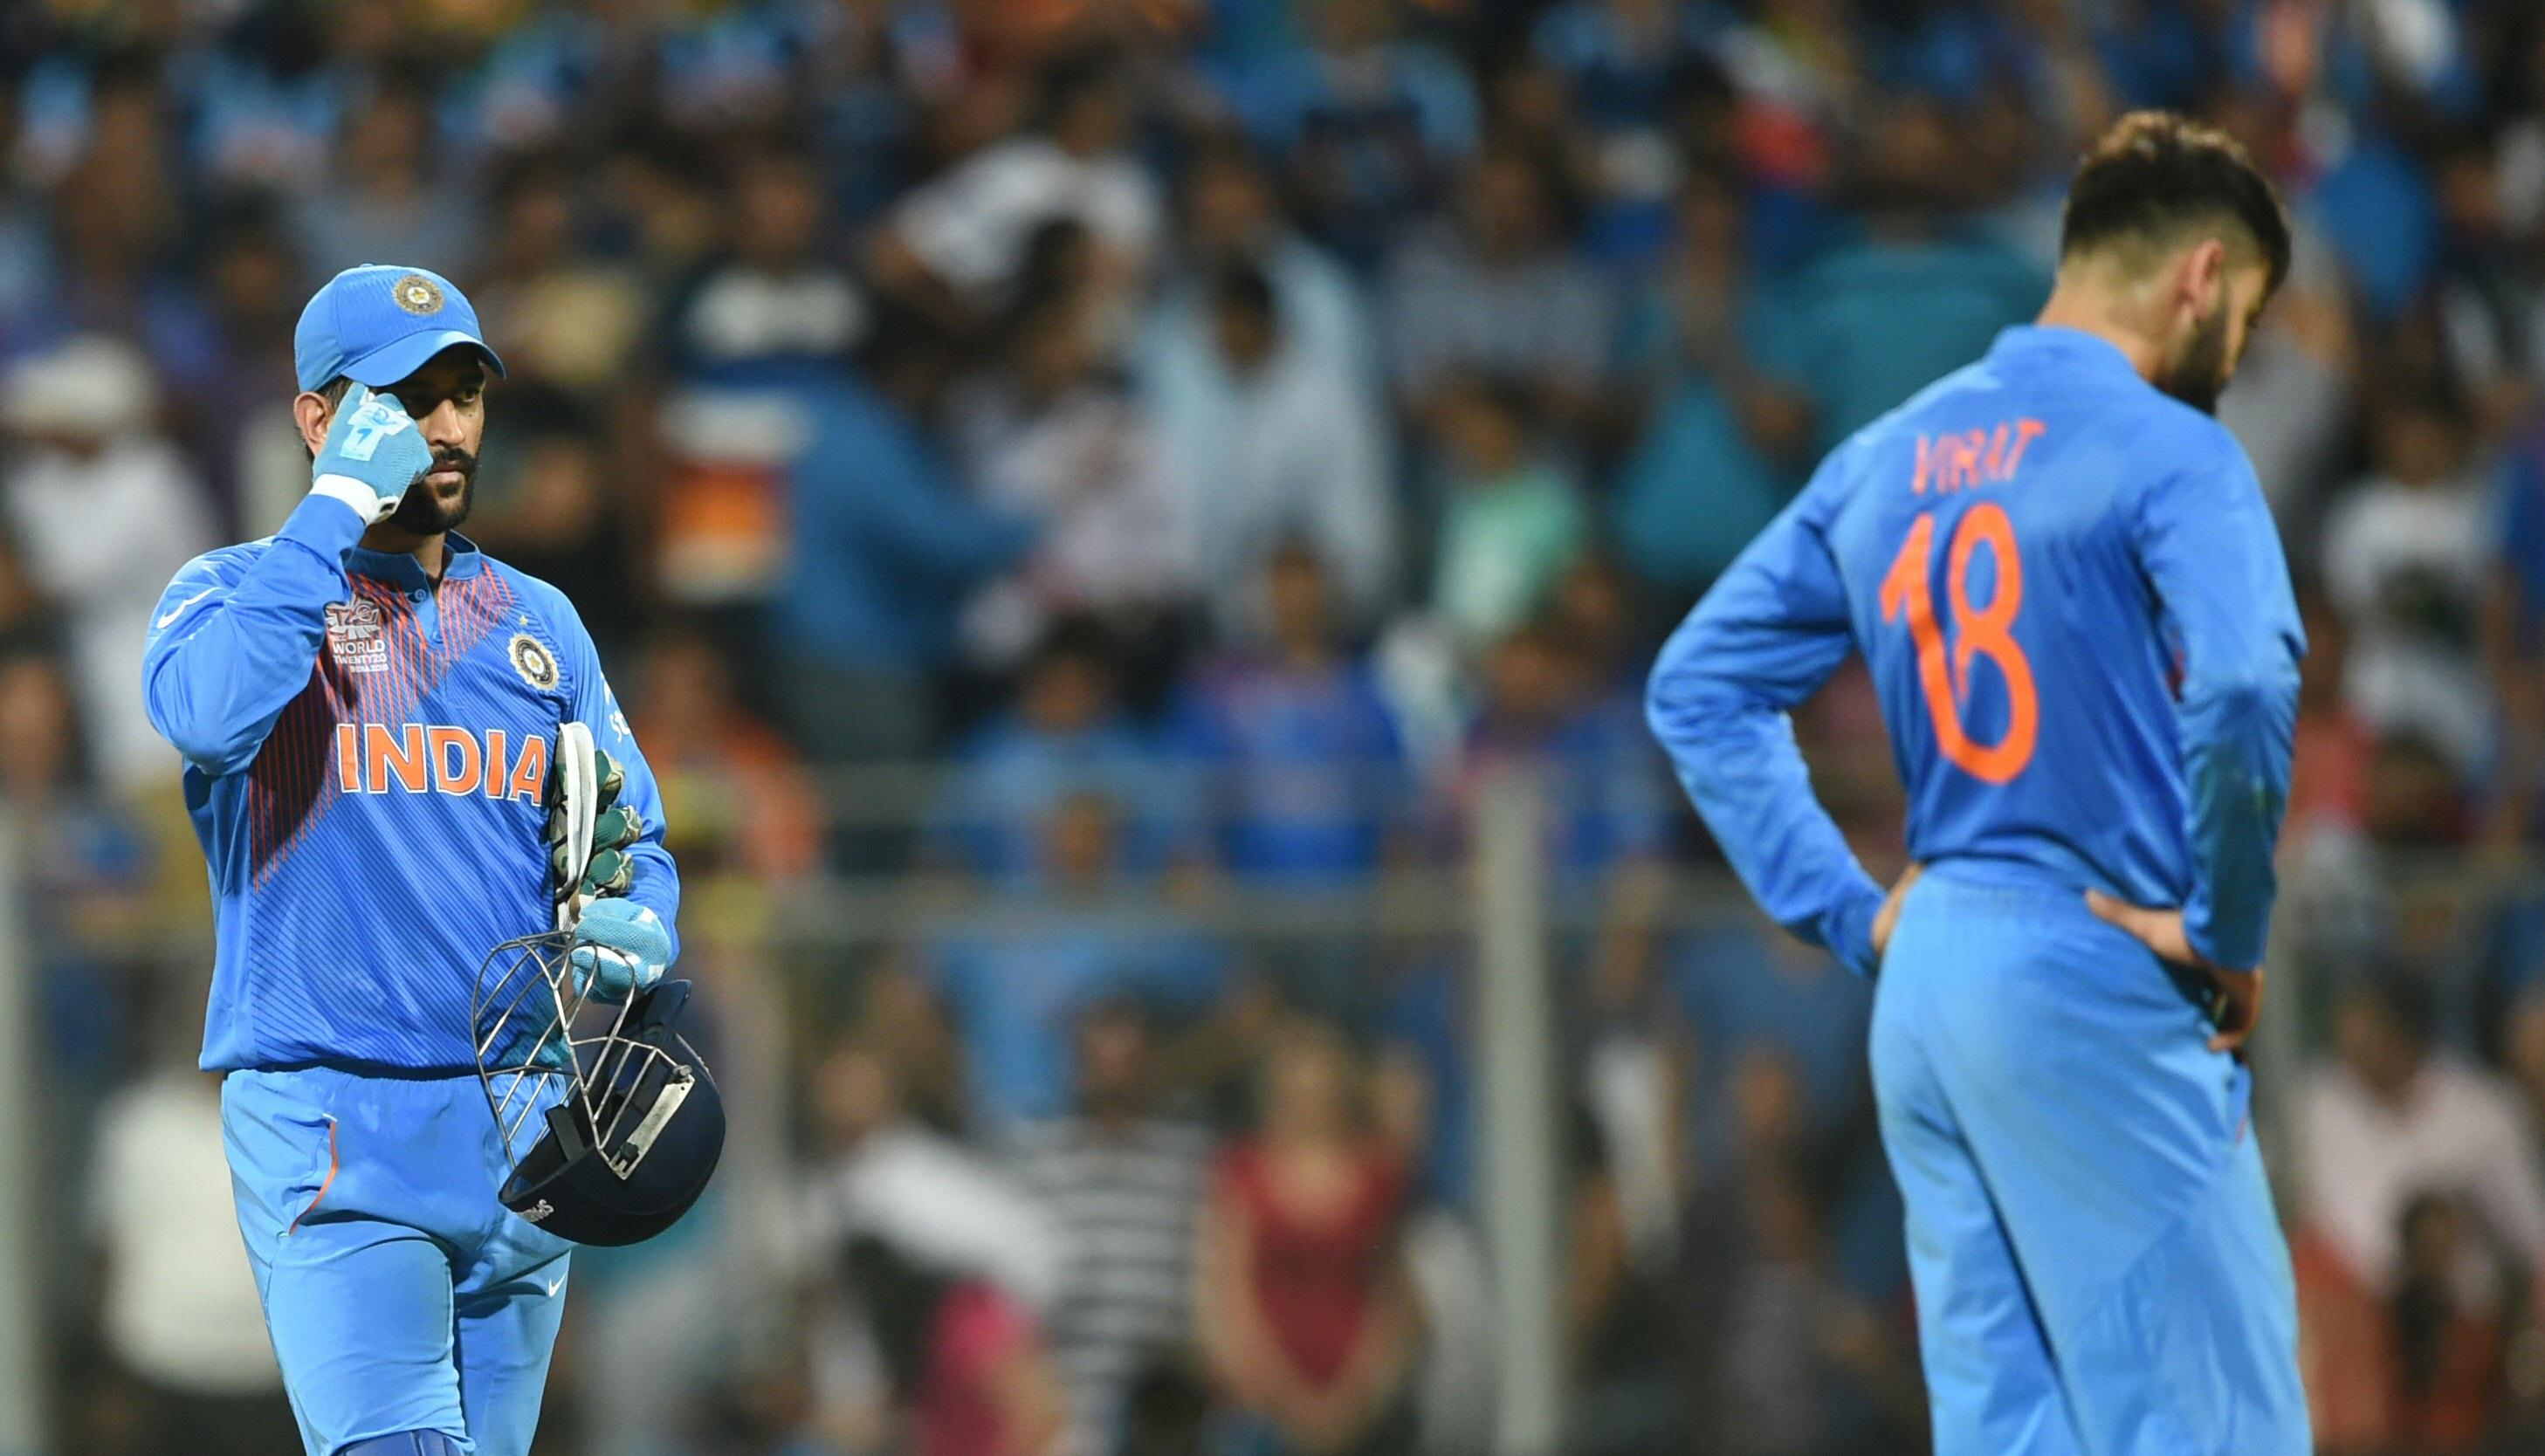 India's captain Mahendra Singh Dhoni(L) and teammate Virat Kohli react after defeat in the World T20 men's semi-final match between India and West Indies at the Wankhede stadium in Mumbai on March 31, 2016. / AFP / INDRANIL MUKHERJEE